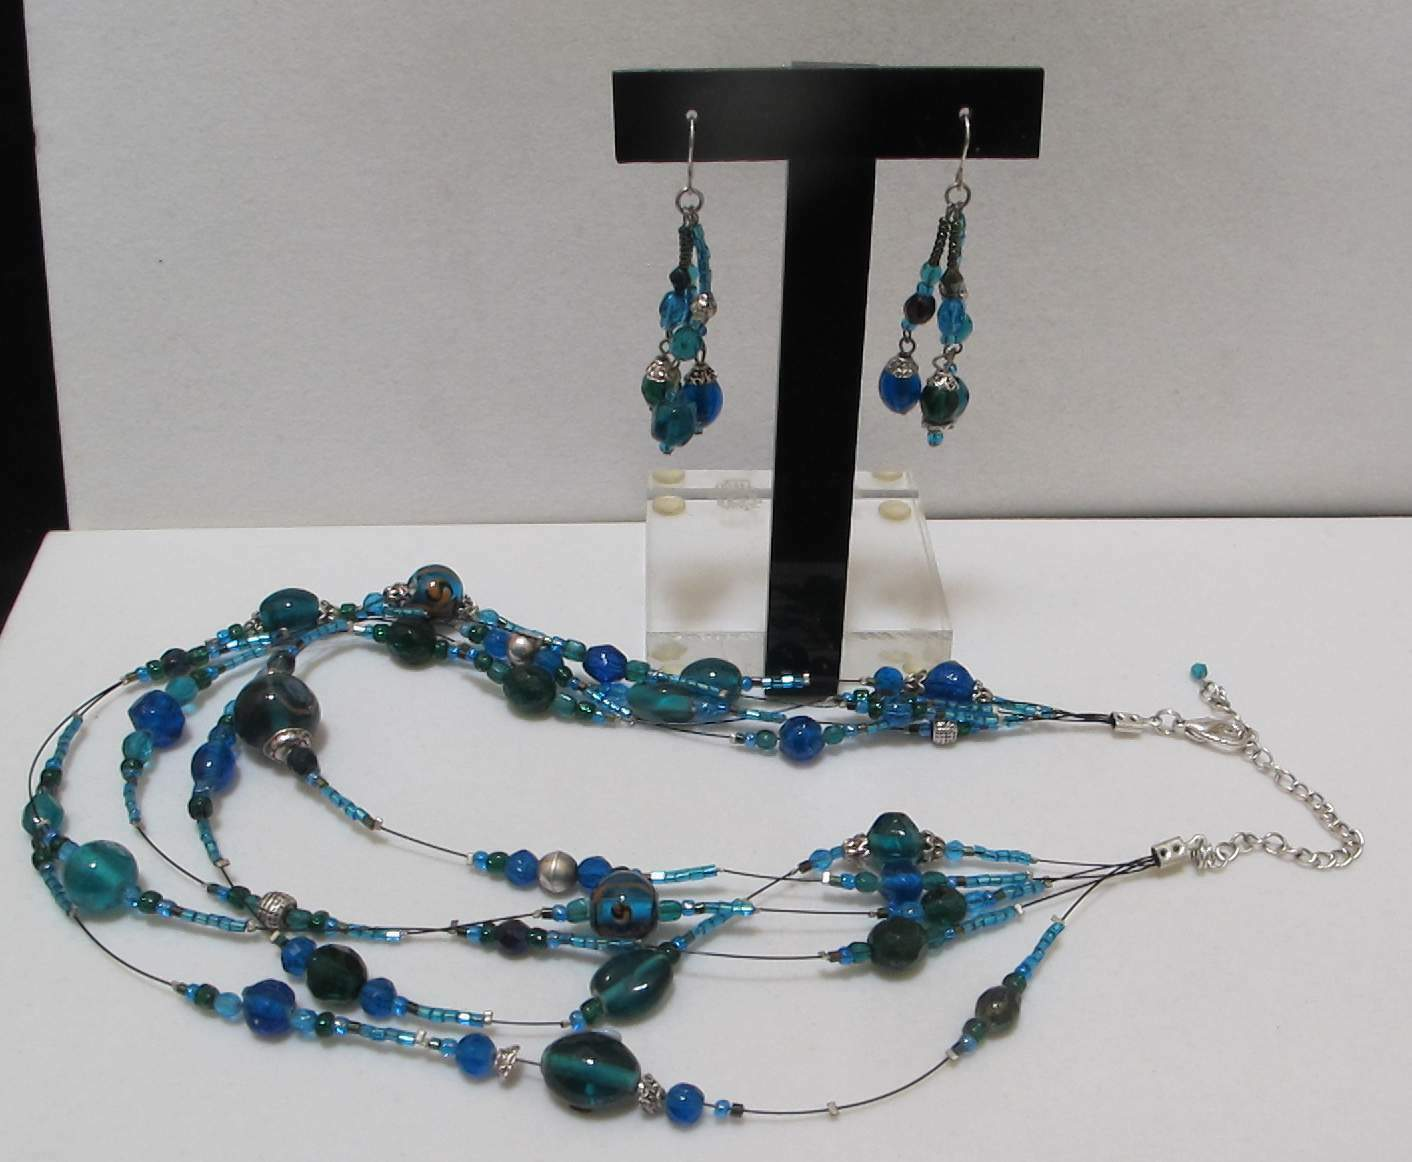 art.196 sleek cascaded design Necklace vintage 1950s Five Strands quality glass beads in vibrant turquoise color